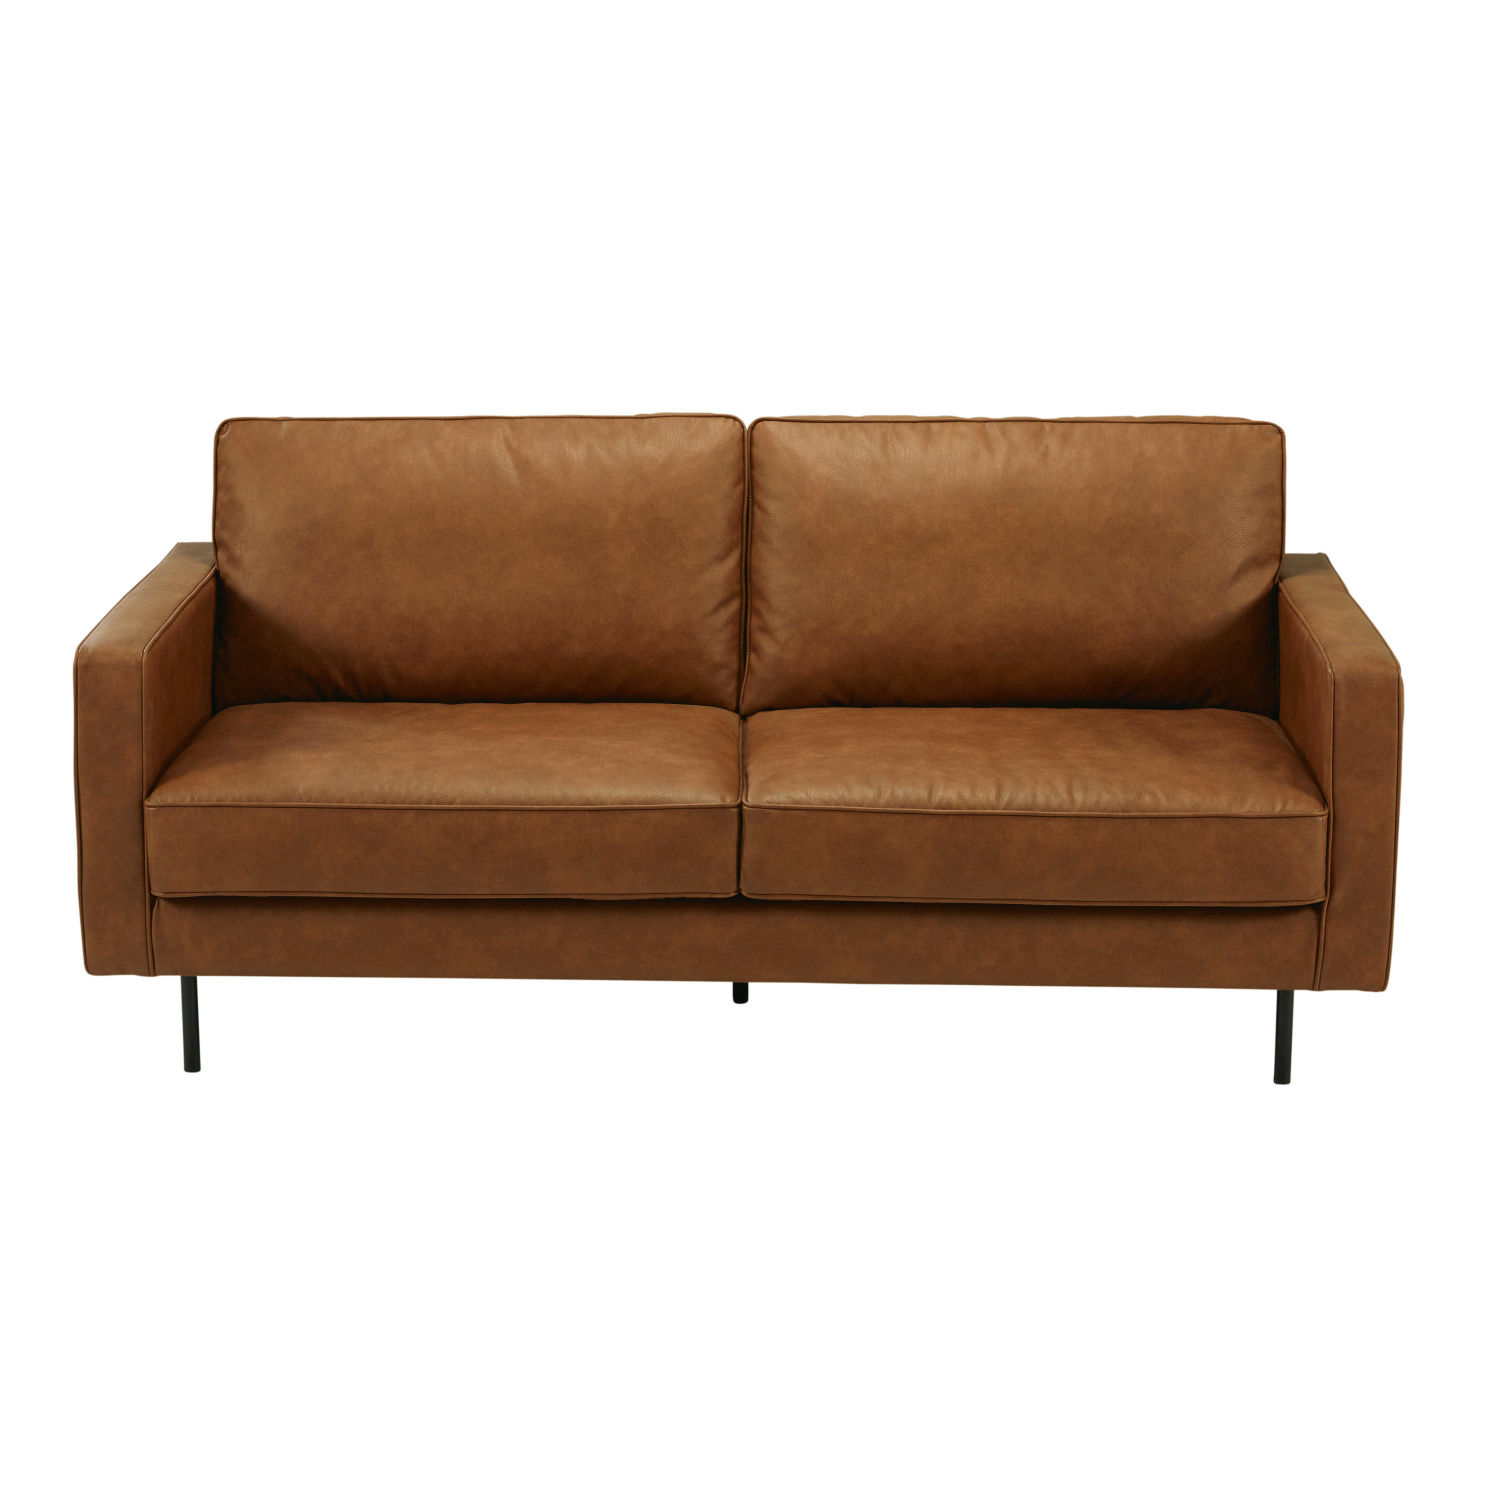 how much fabric to recover a camelback sofa wooden chair with cushions camel 2 3 seater maisons du monde